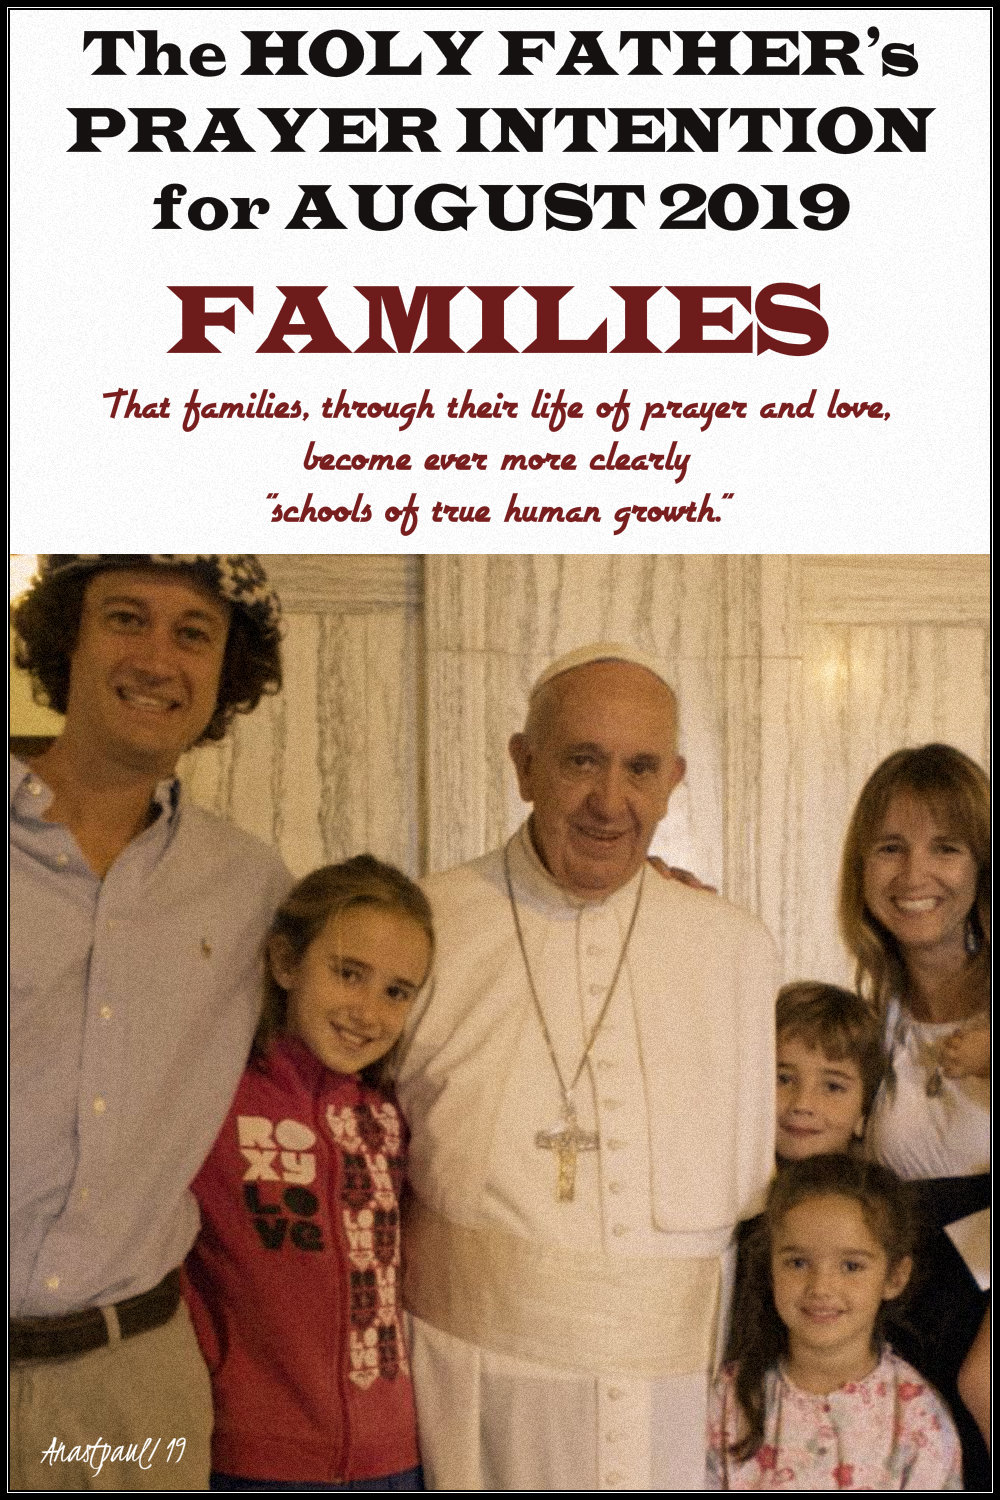 holy father's prayer inention august 2019 families